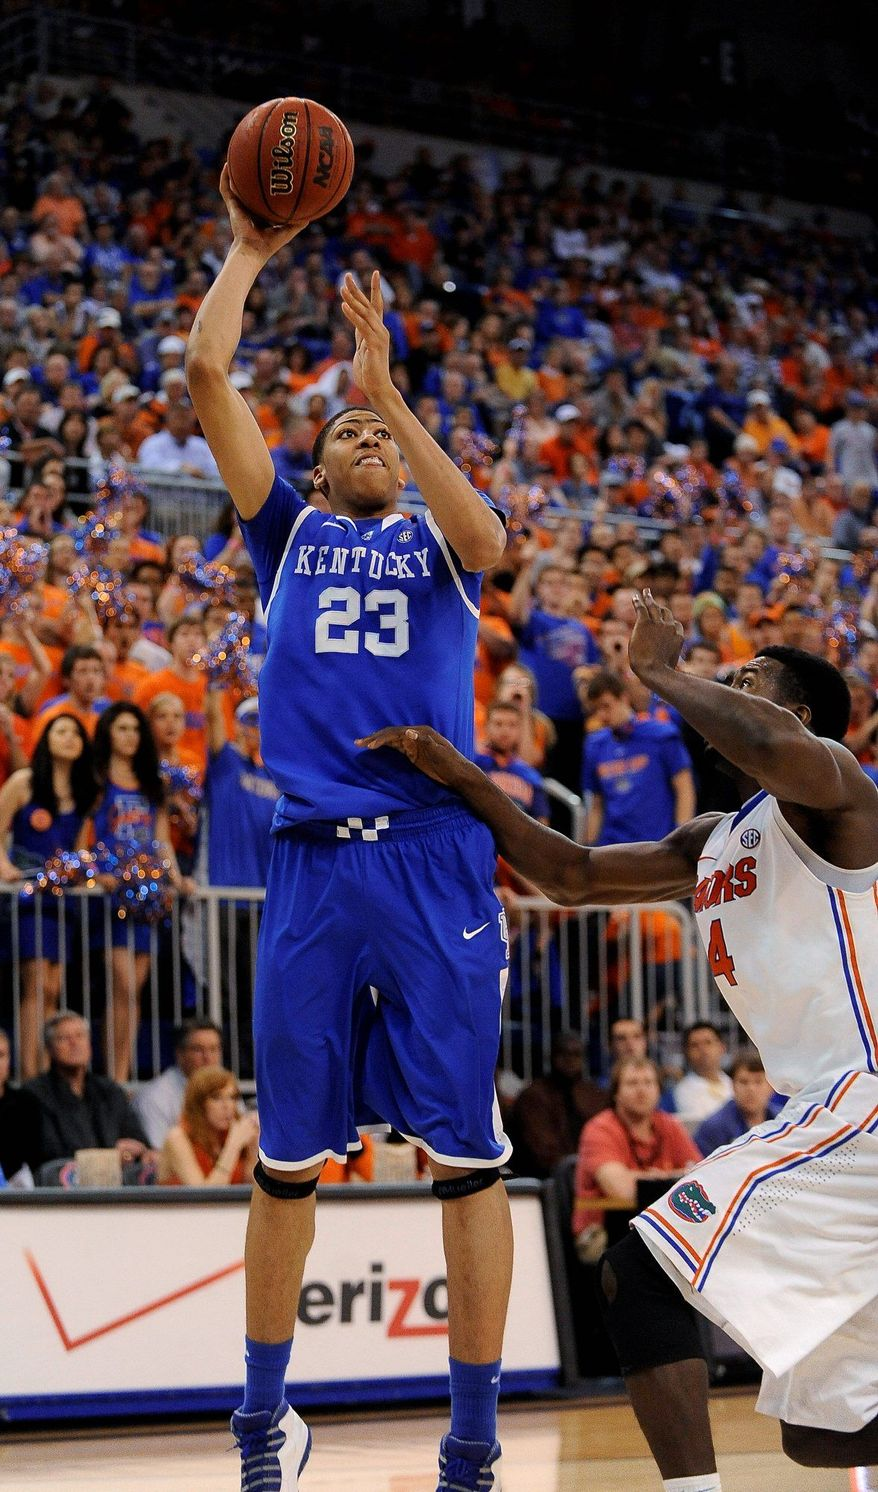 Kentucky's Anthony Davis shoots a 3-pointer as Florida's Patric Young (4) approaches during the second half of an NCAA college basketball game in Gainesville, Fla., Sunday, March 4, 2012. Kentucky defeated Florida 74-59. (AP Photo/Phil Sandlin)